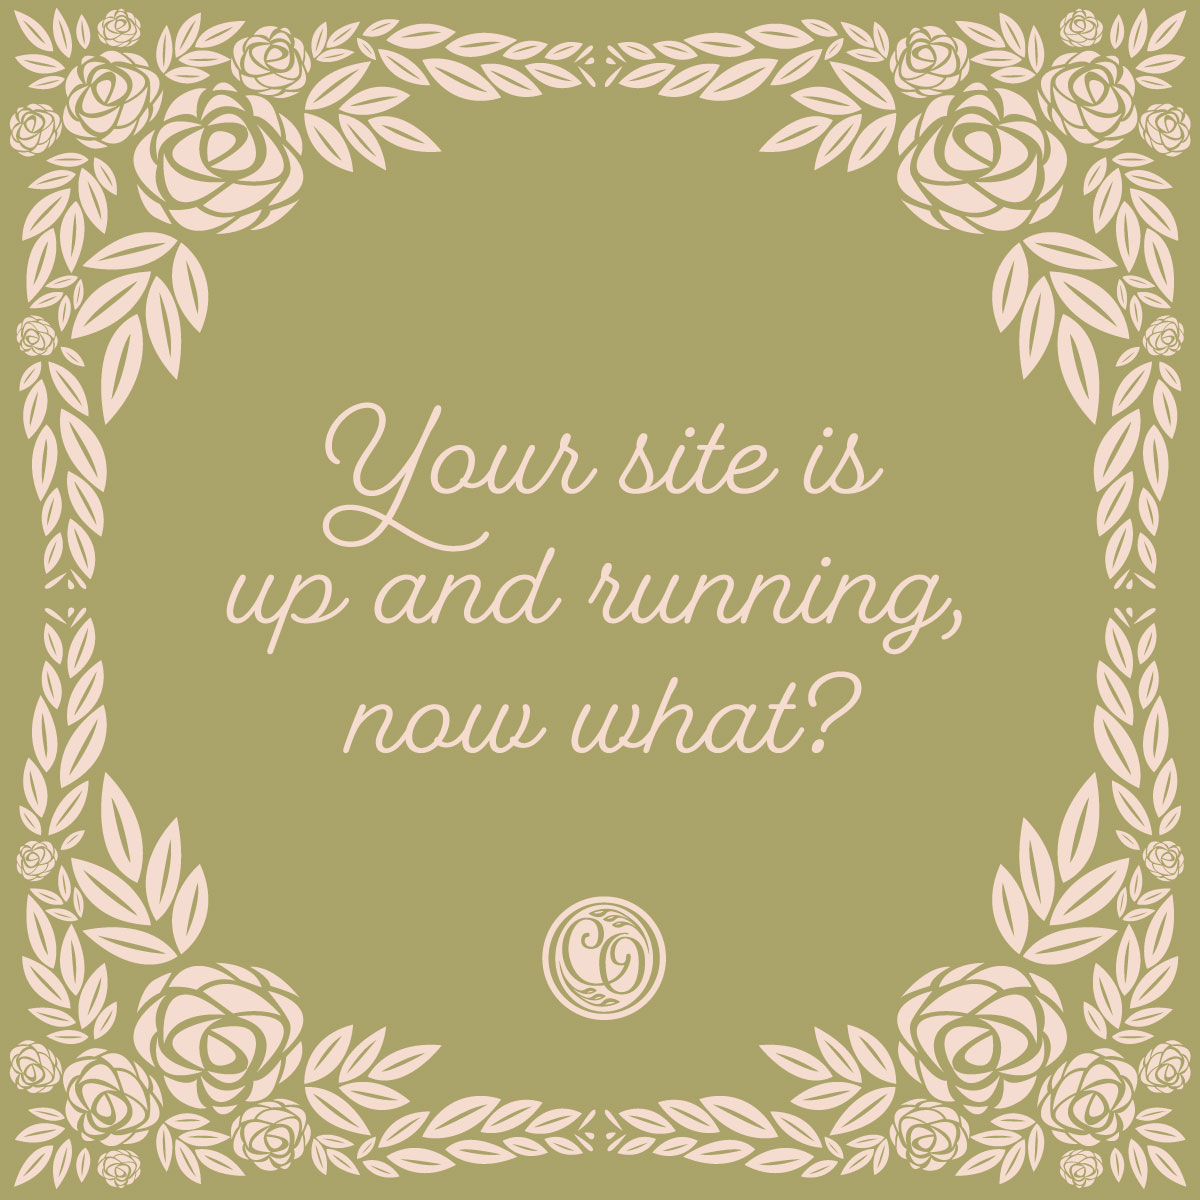 Your site is up and running, now what?